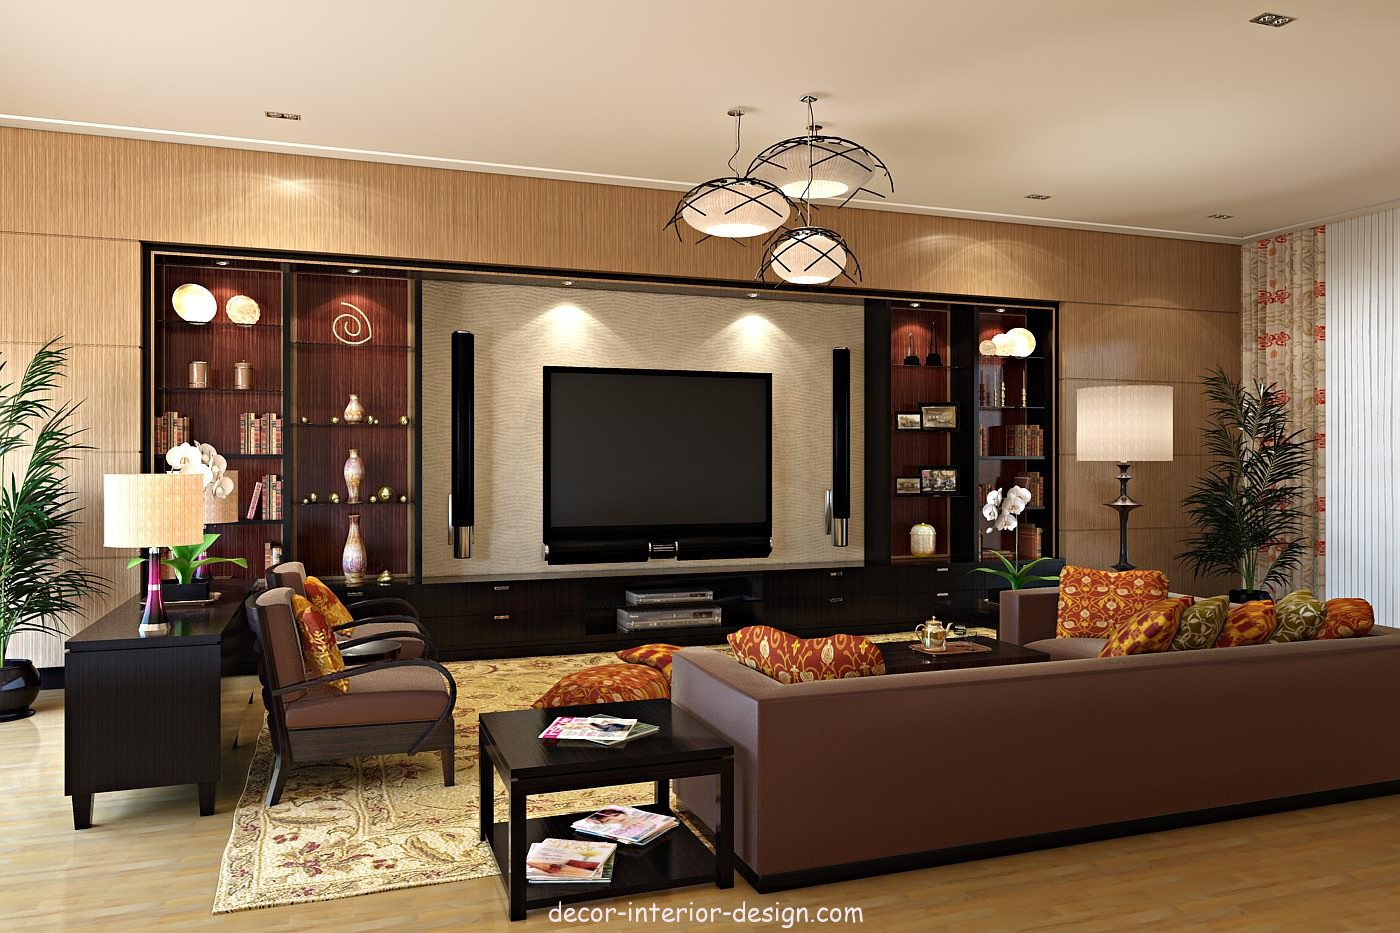 4 Valuable Insights for Décor & Design